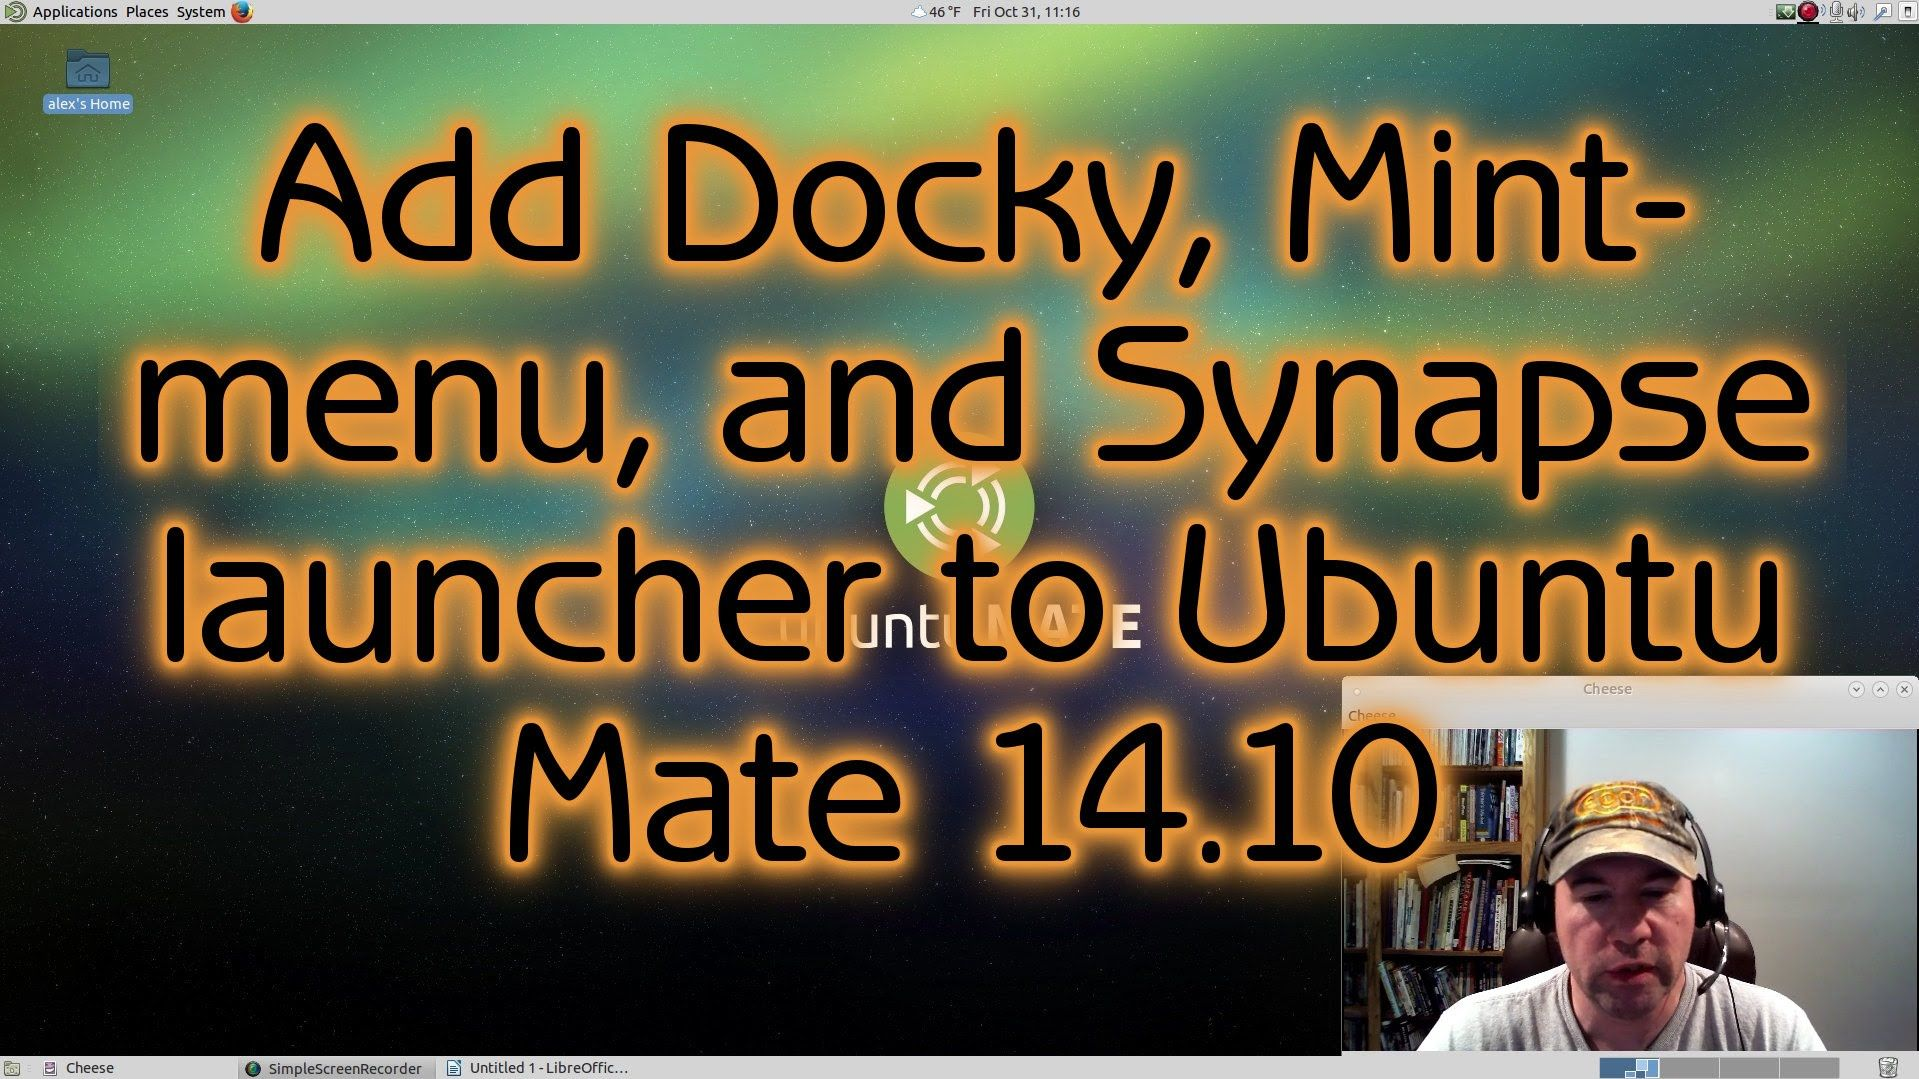 A tutorial showing how to add Docky, Mint-menu and the